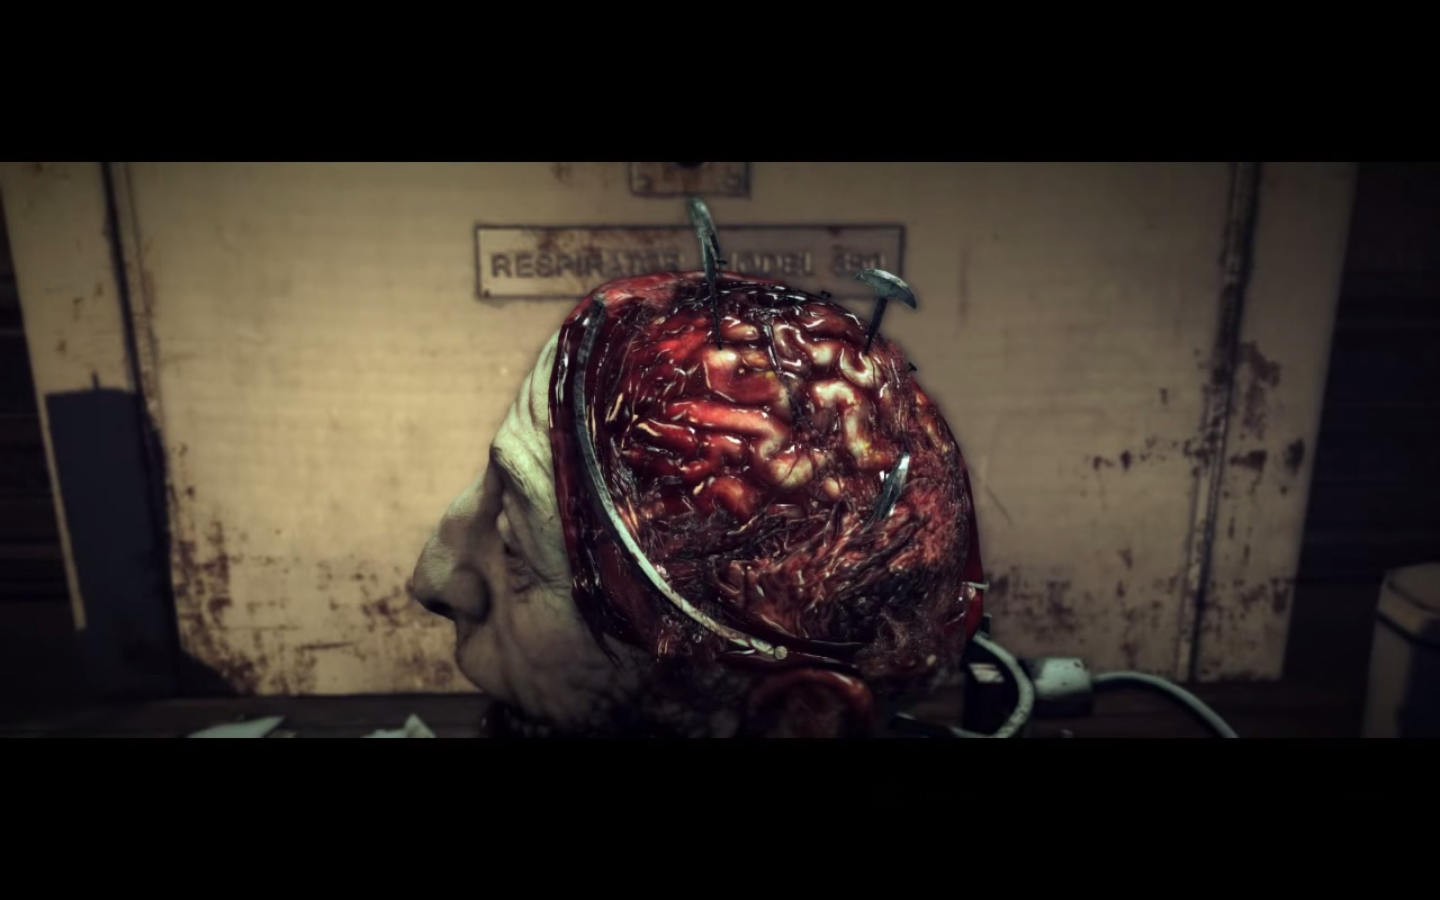 The Evil Within – Strach, brutalita a psychoteror 9679